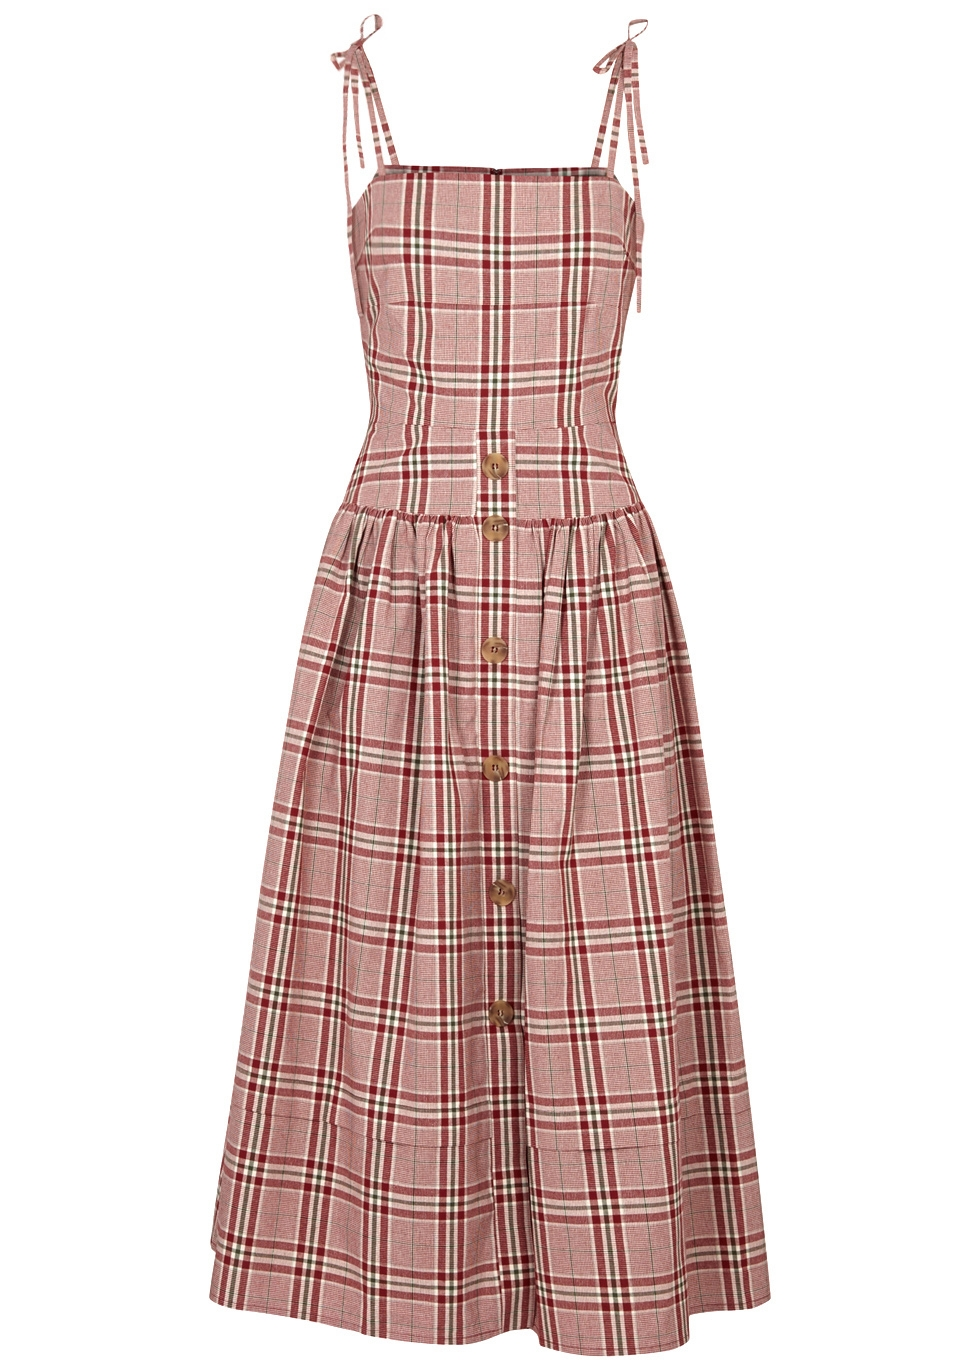 Issy Checked Cotton Midi Dress in Red